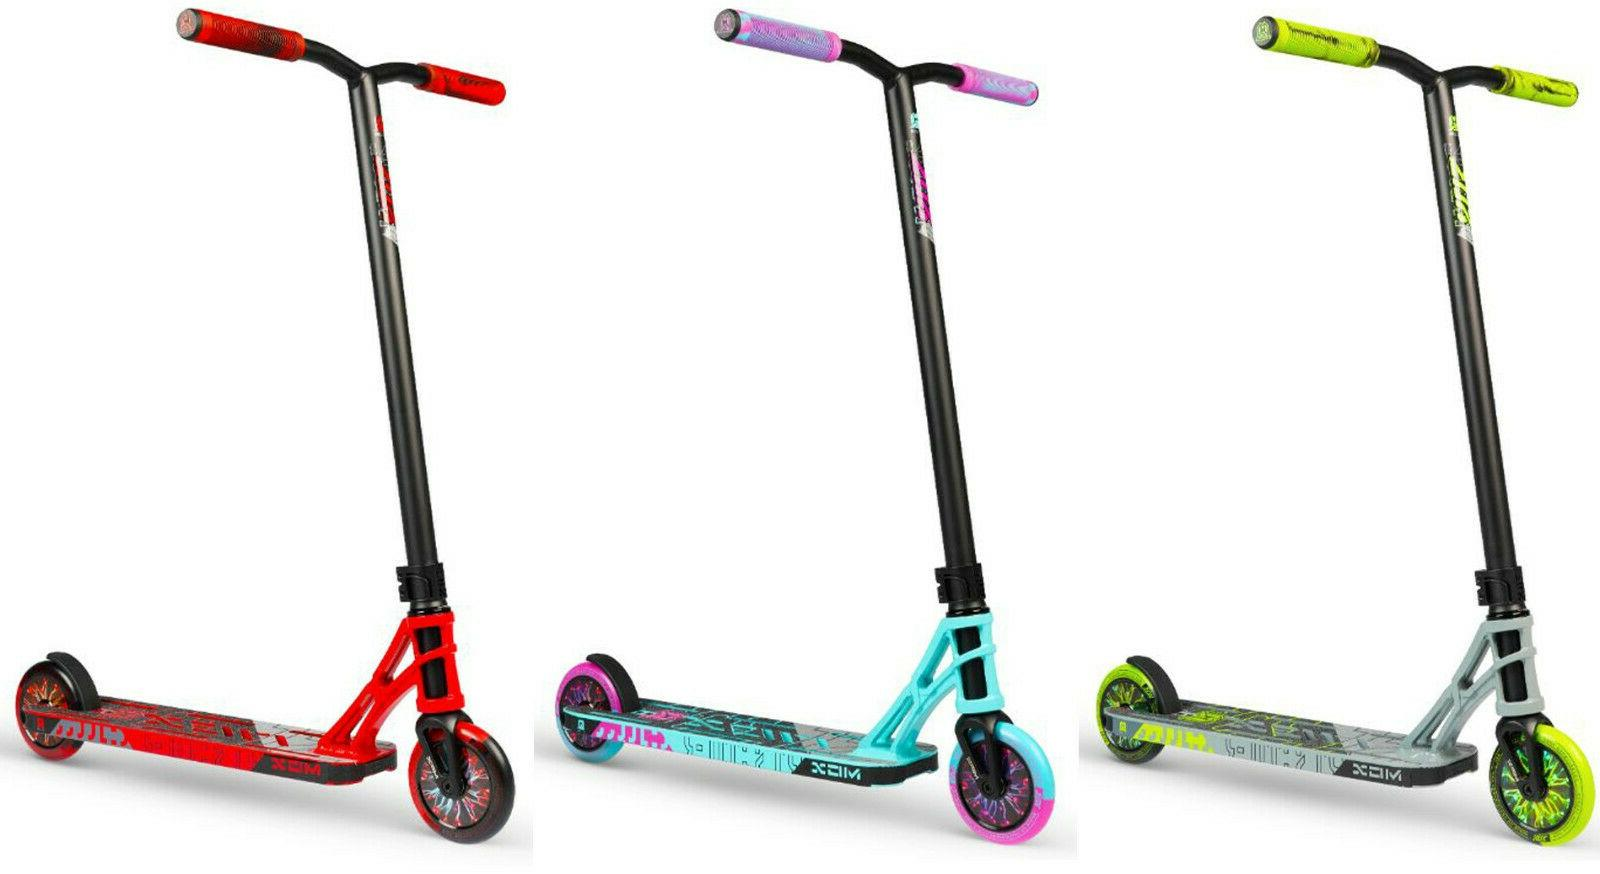 mgx p1 pro complete freestyle kick scooter